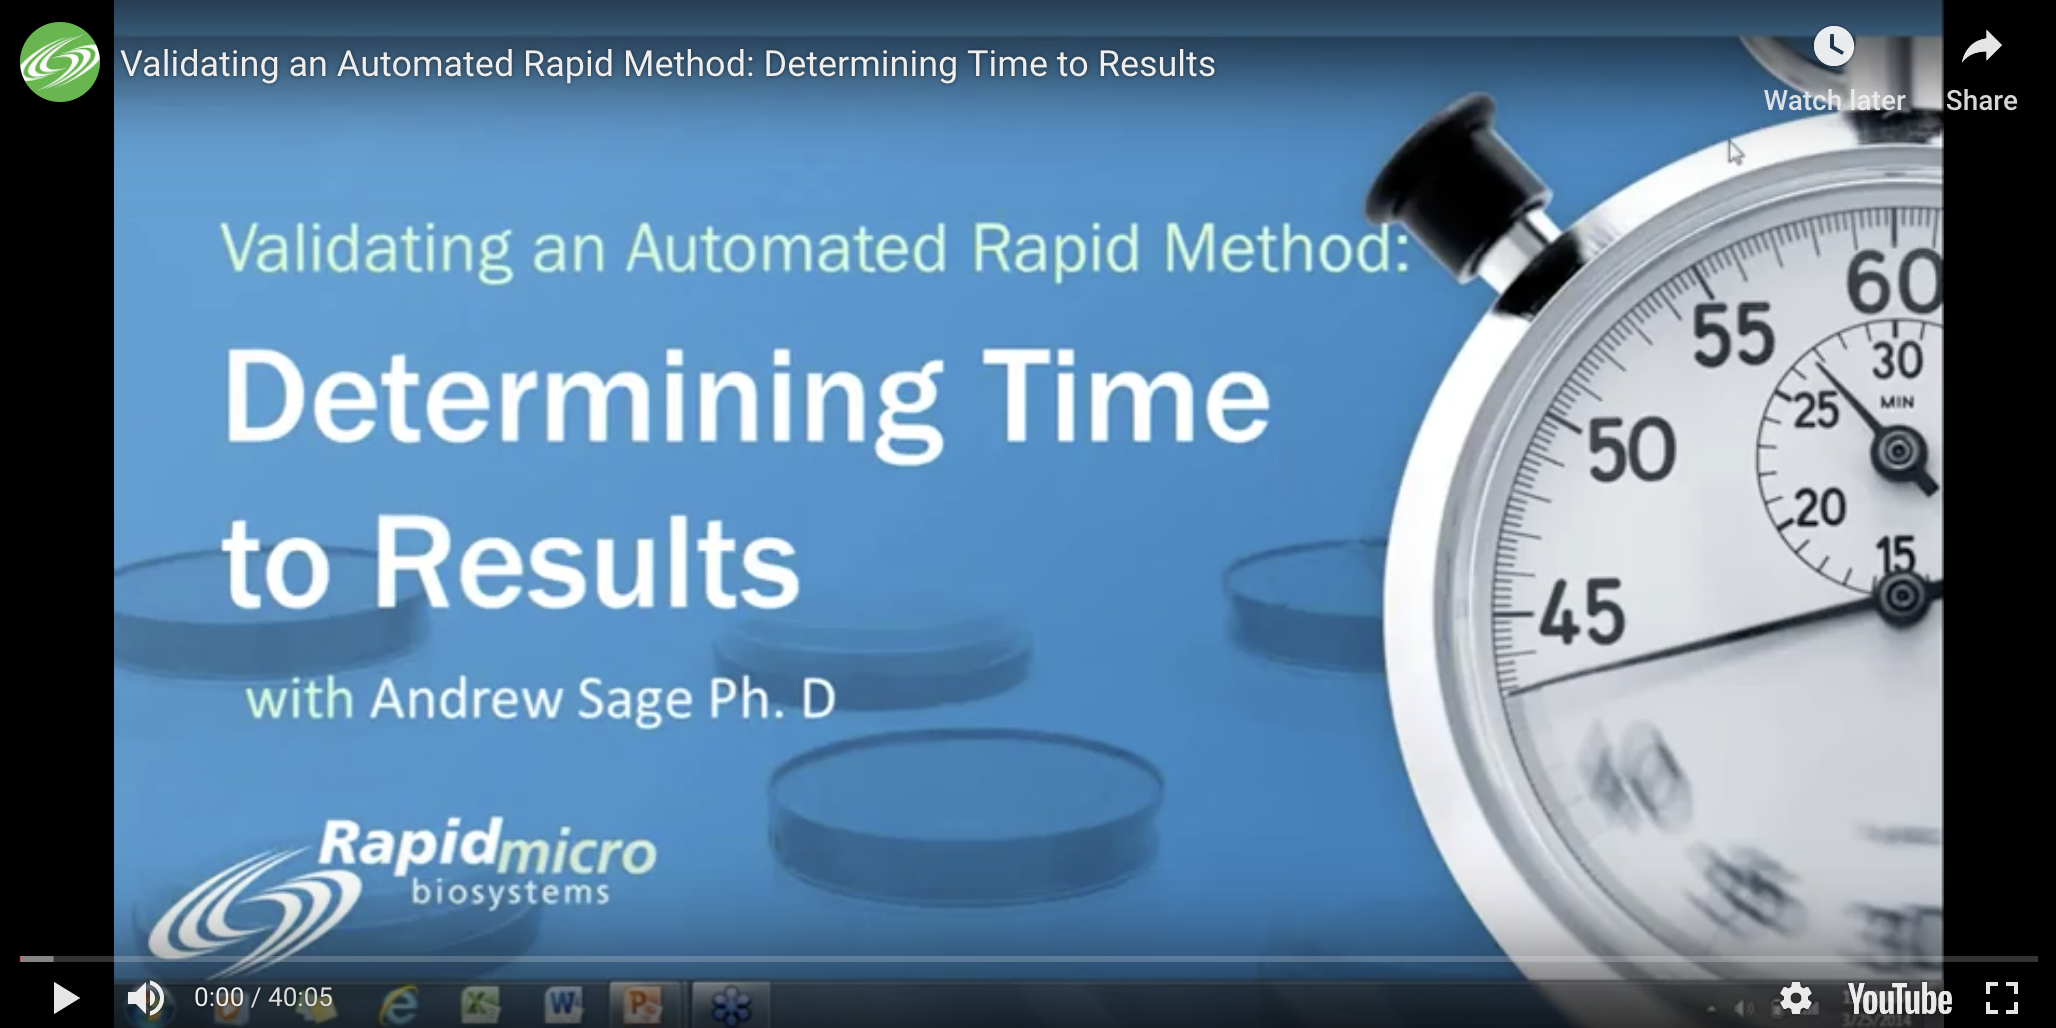 Validating an Automated Rapid Method: Determining Time to Results